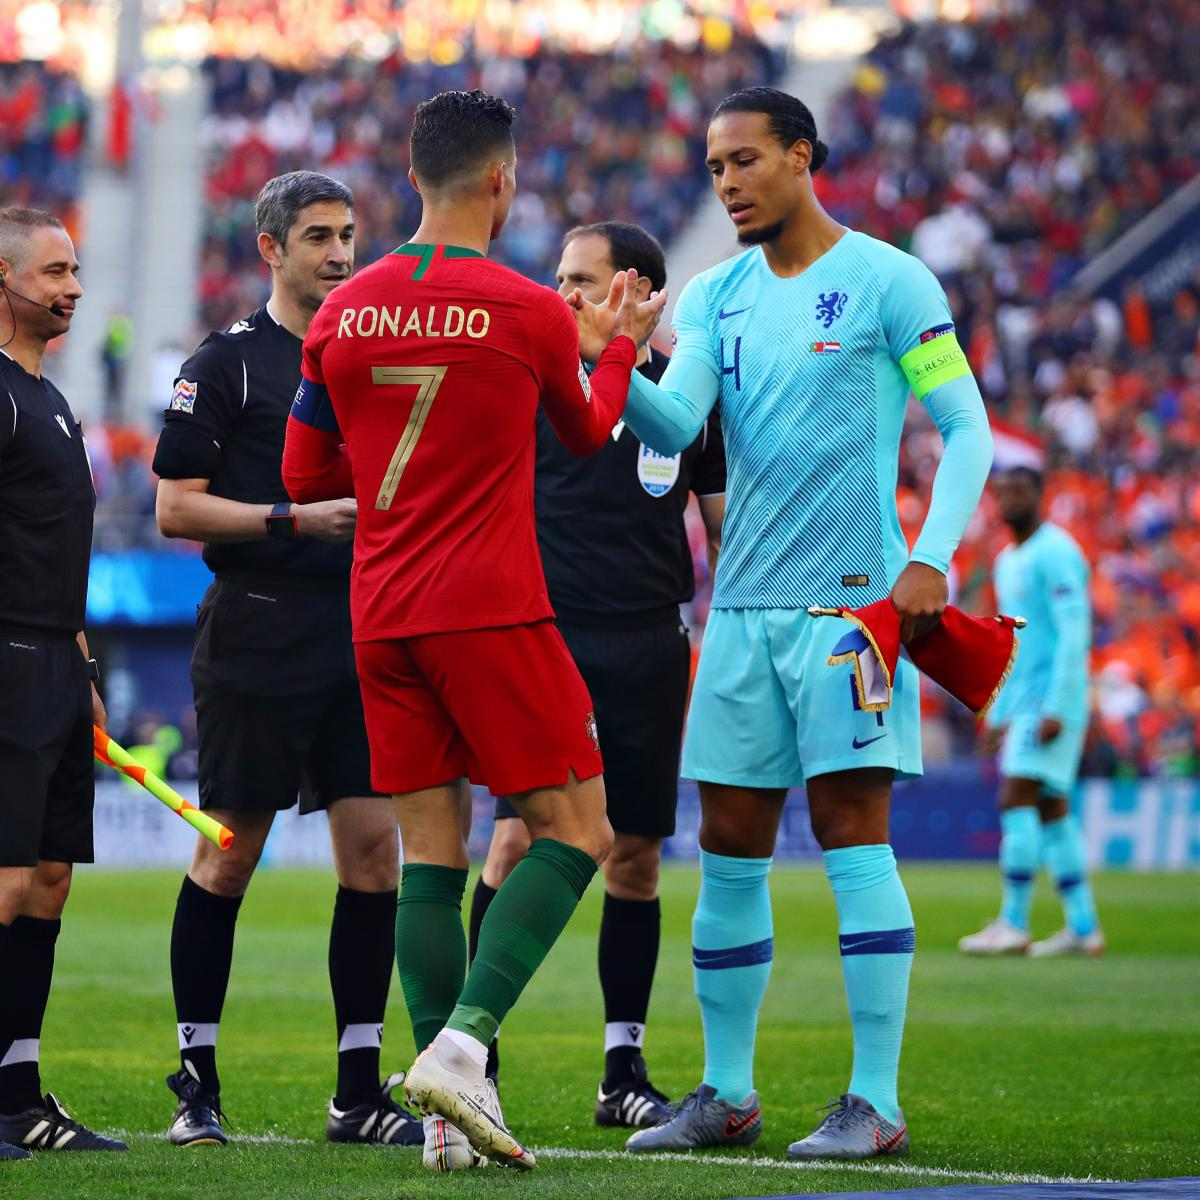 Van Dijk The Favorites Ronaldo Only 8th Placed In 2019 Ballon D Or Rankings